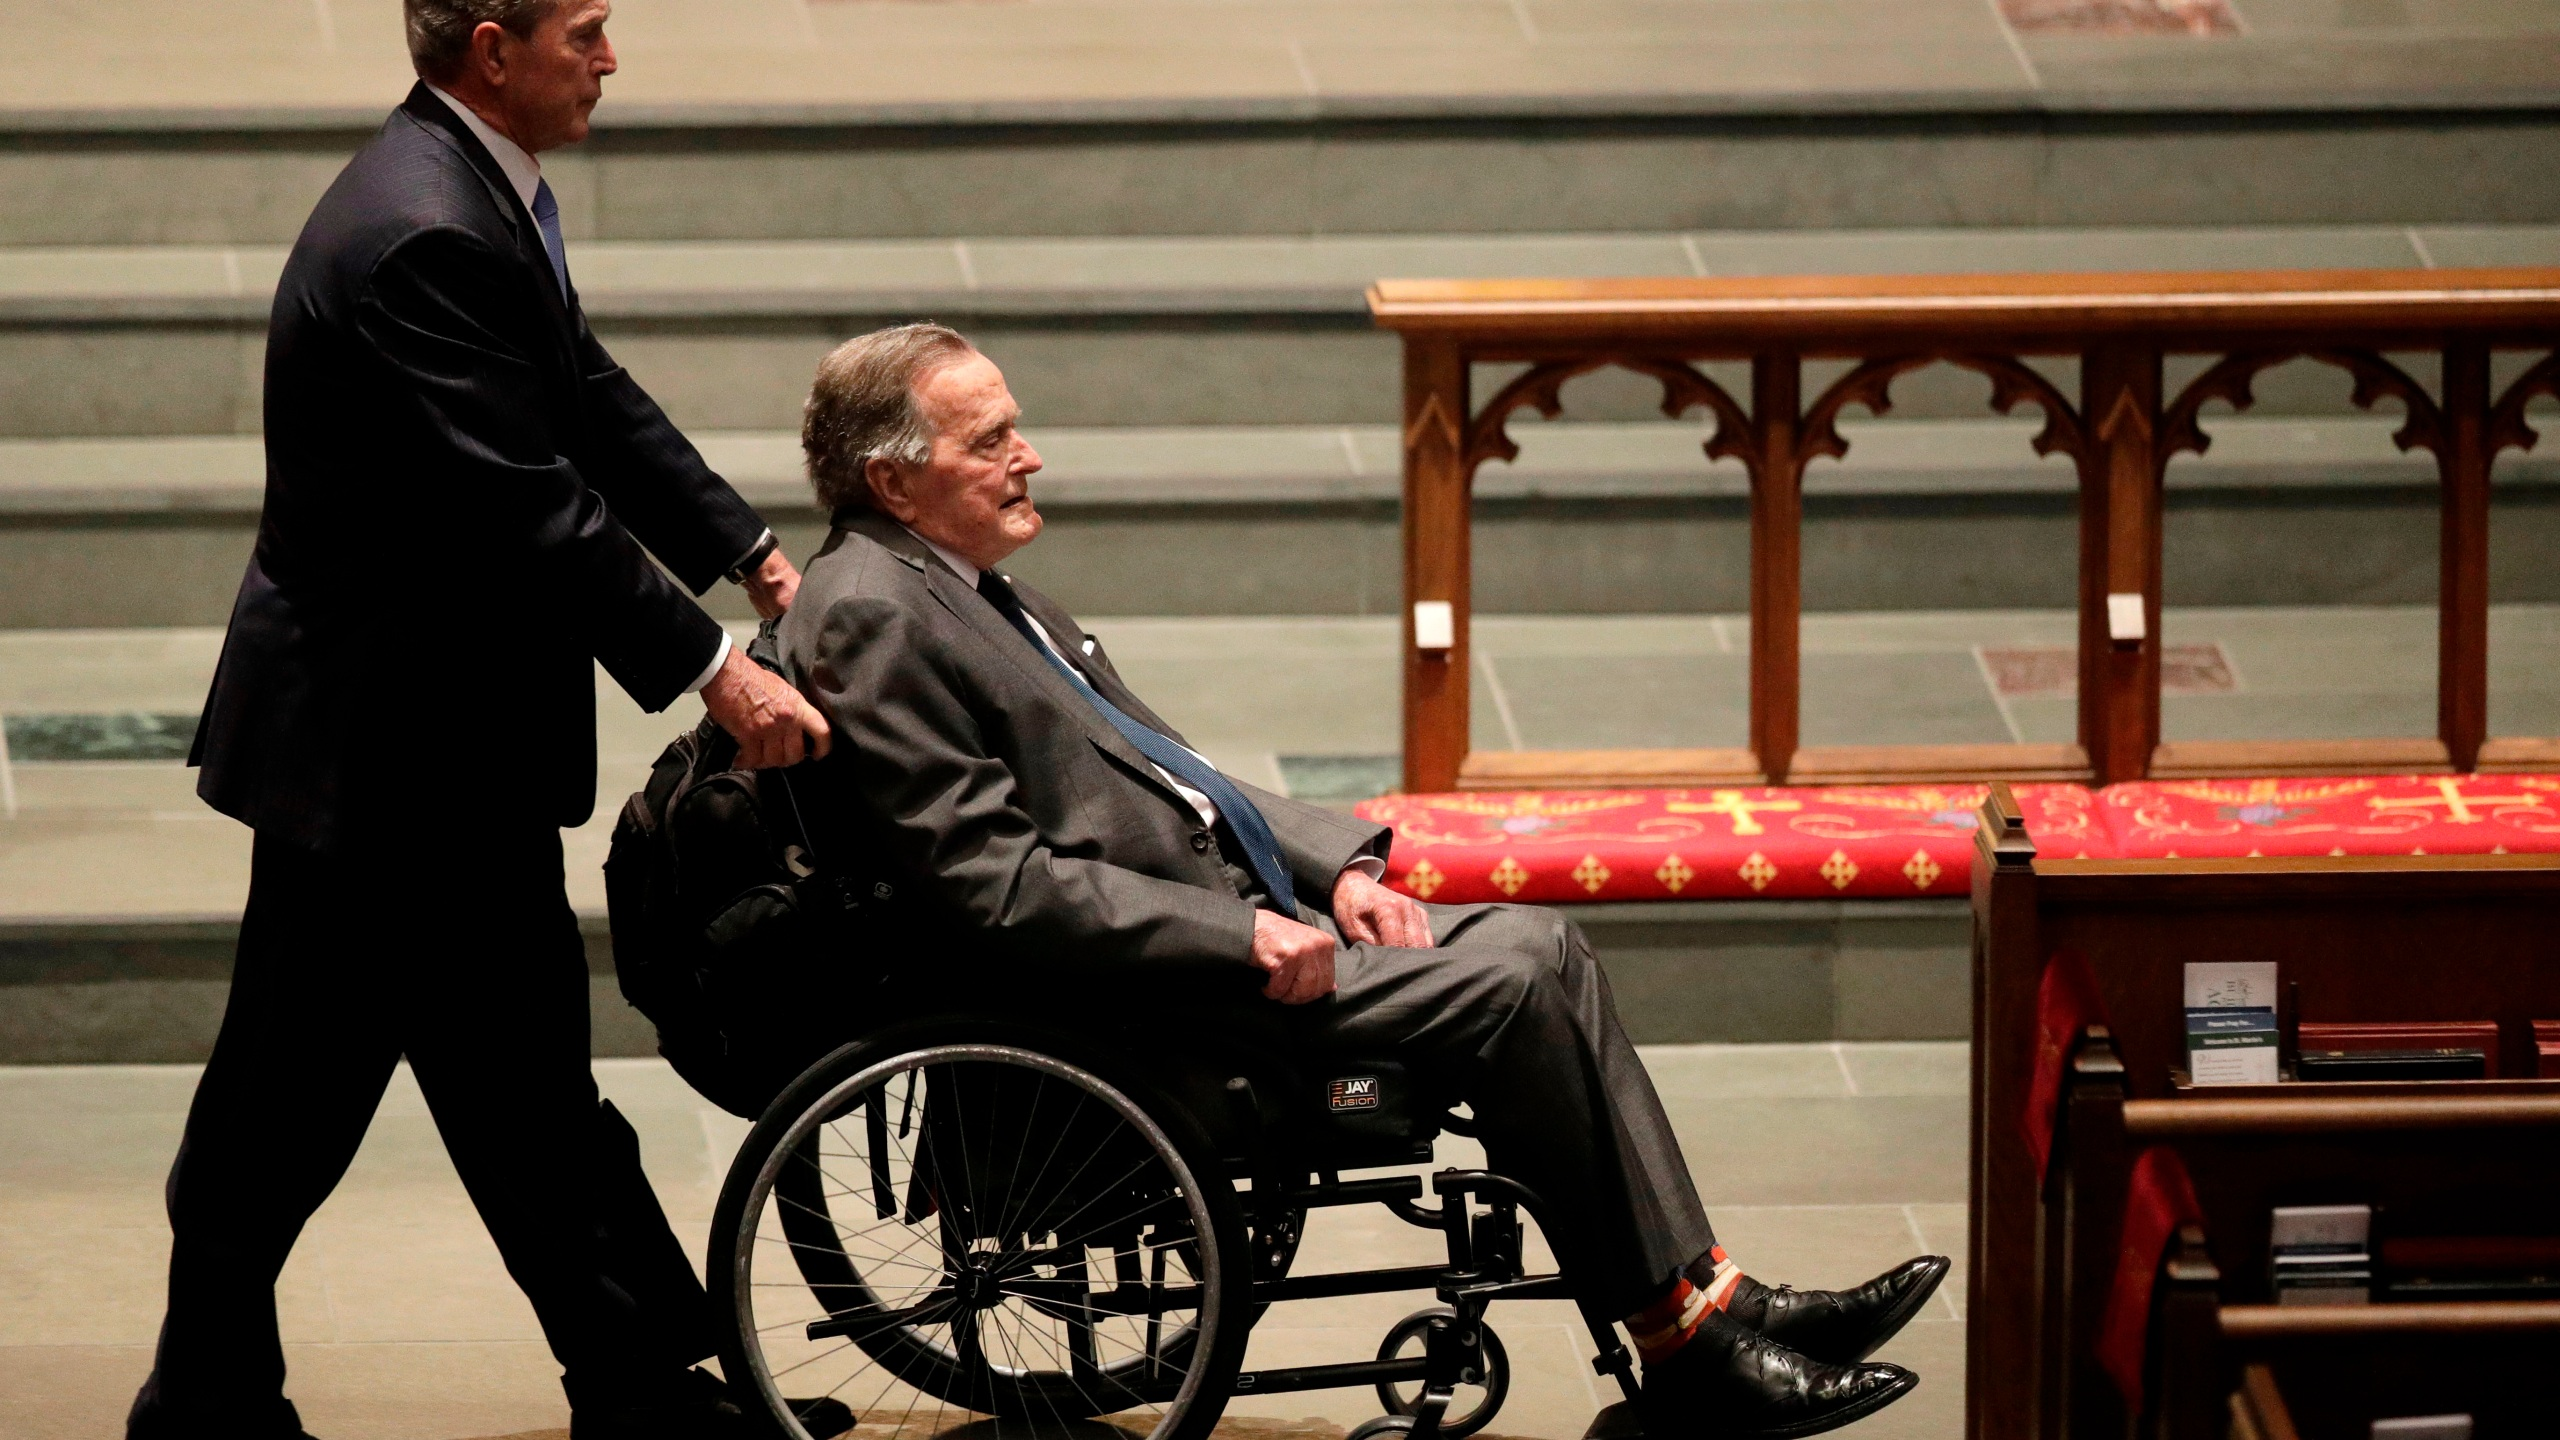 George_H.W._Bush_Hospitalized_95850-159532.jpg99709665